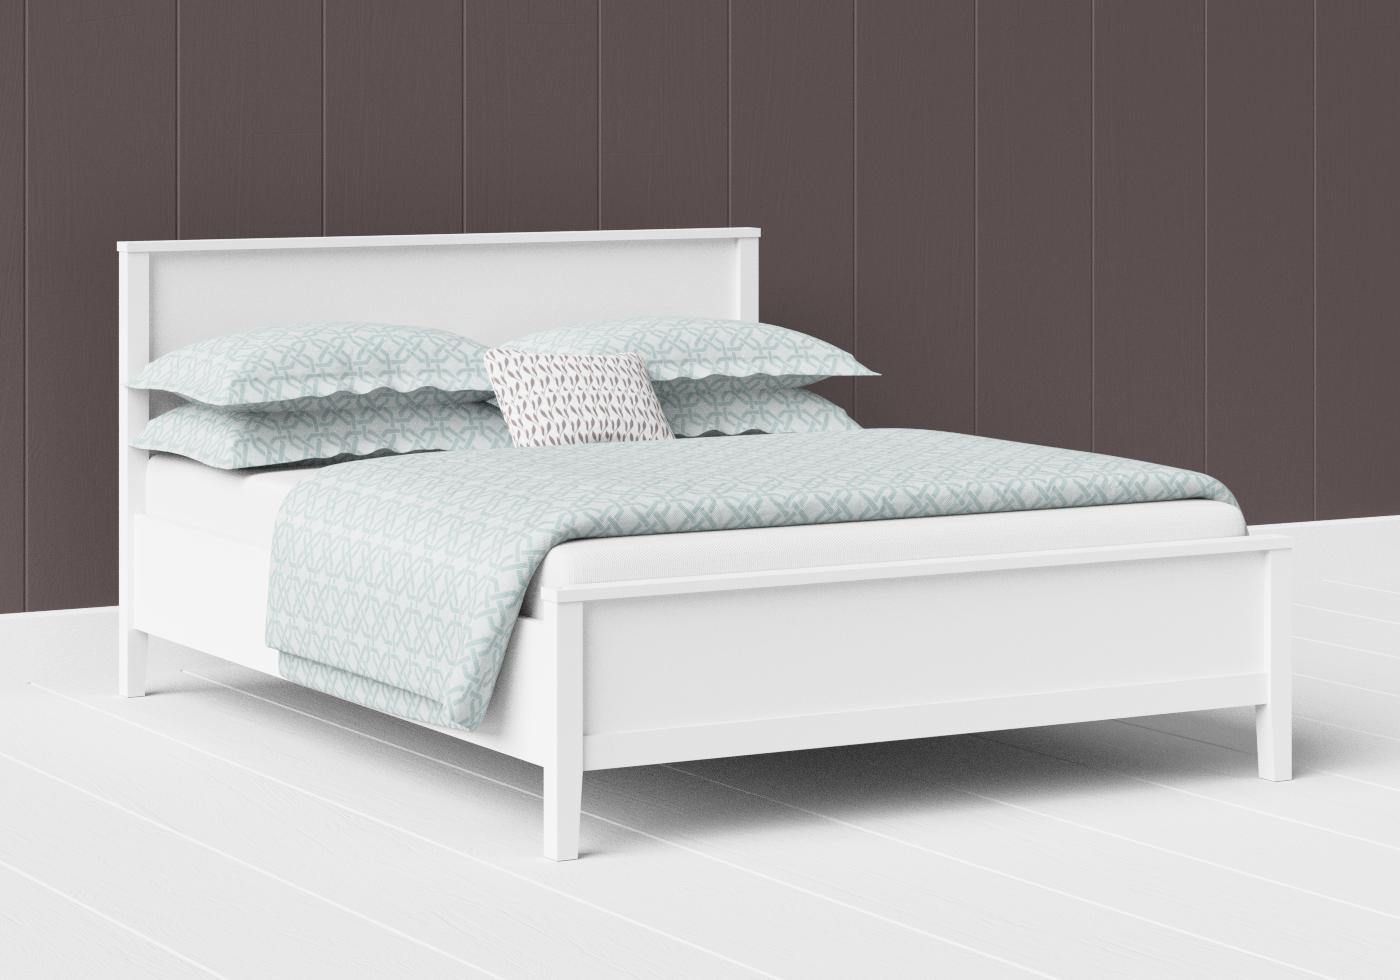 Ramsay low footend painted wood bed in satin white